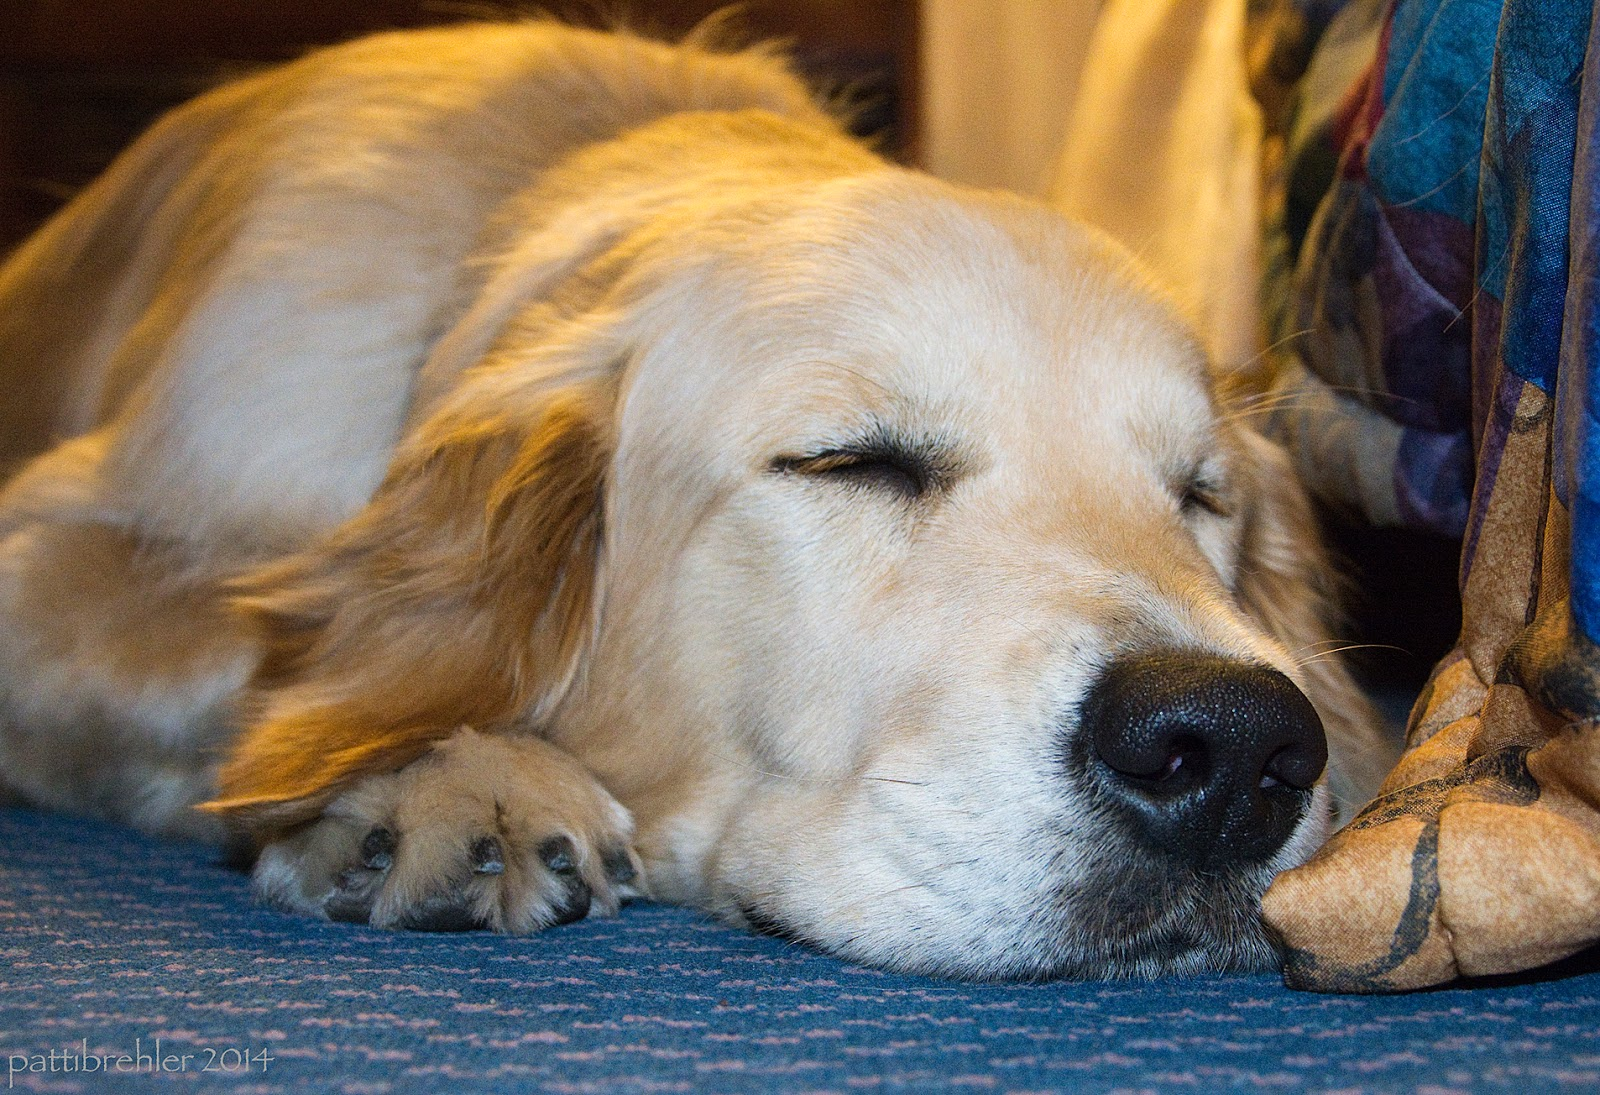 A close up shot at floor level of a golden retriever sleeping on the floor. The golden has his chin between his front paws and is facing the camera. The carpet is teal blue and to the right of hte dog's head is a multi-colored bedspread.